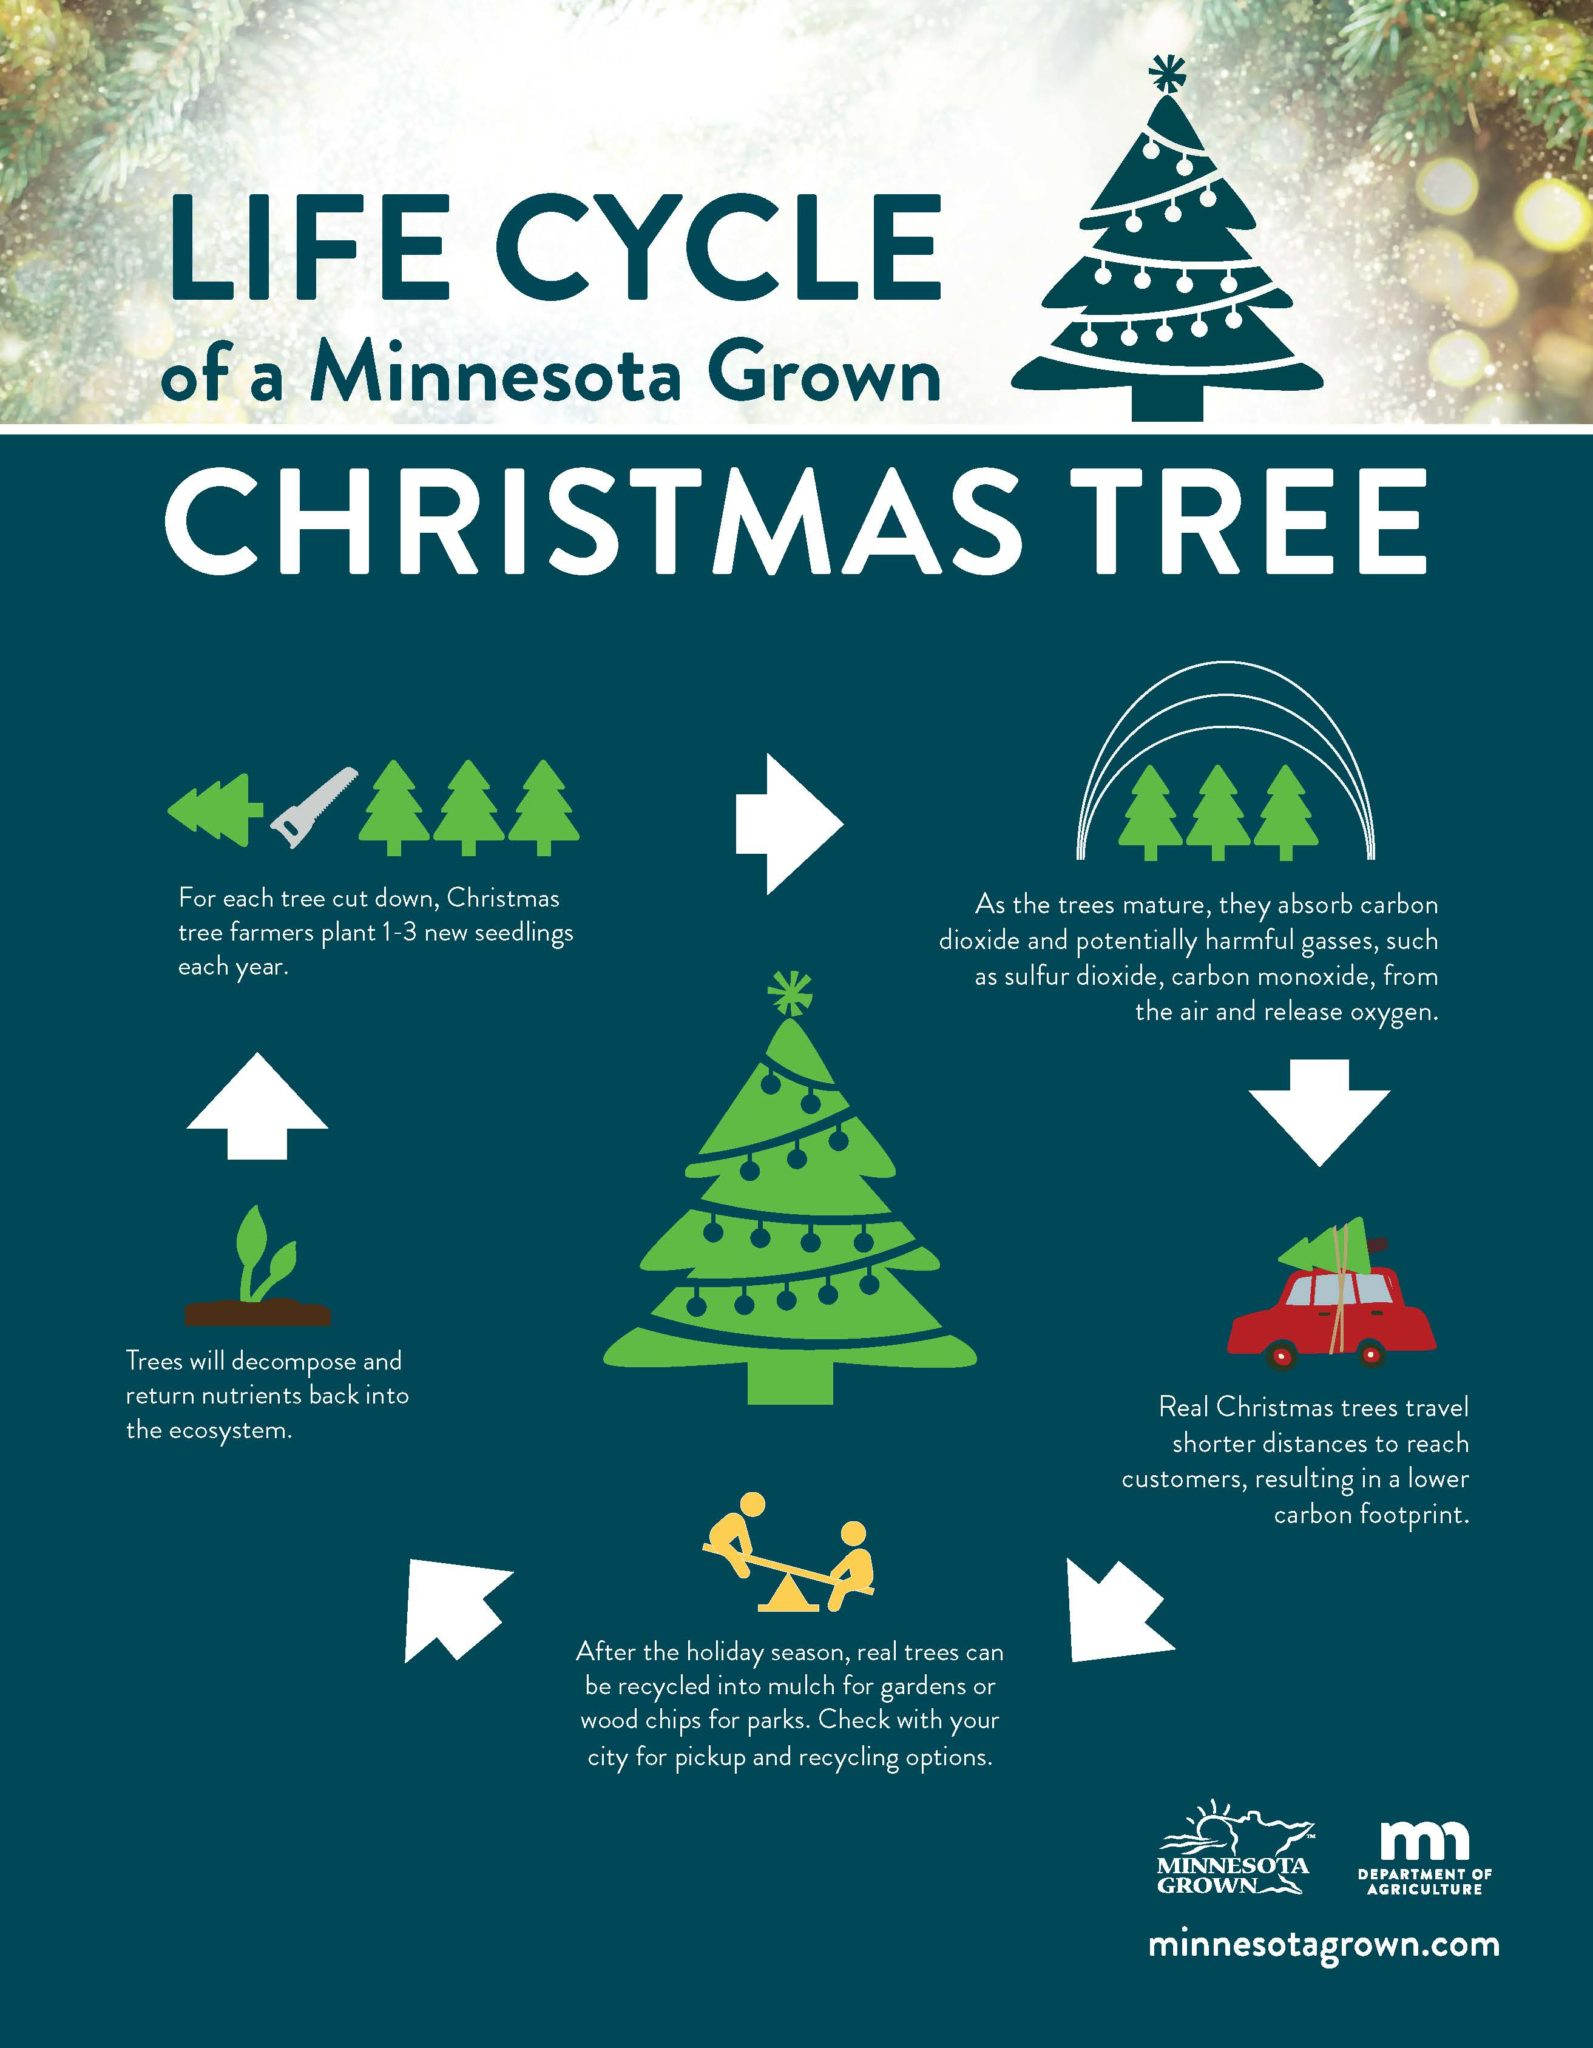 Minnesota Christmas Tree Life Cycle COPIER 10.22.18